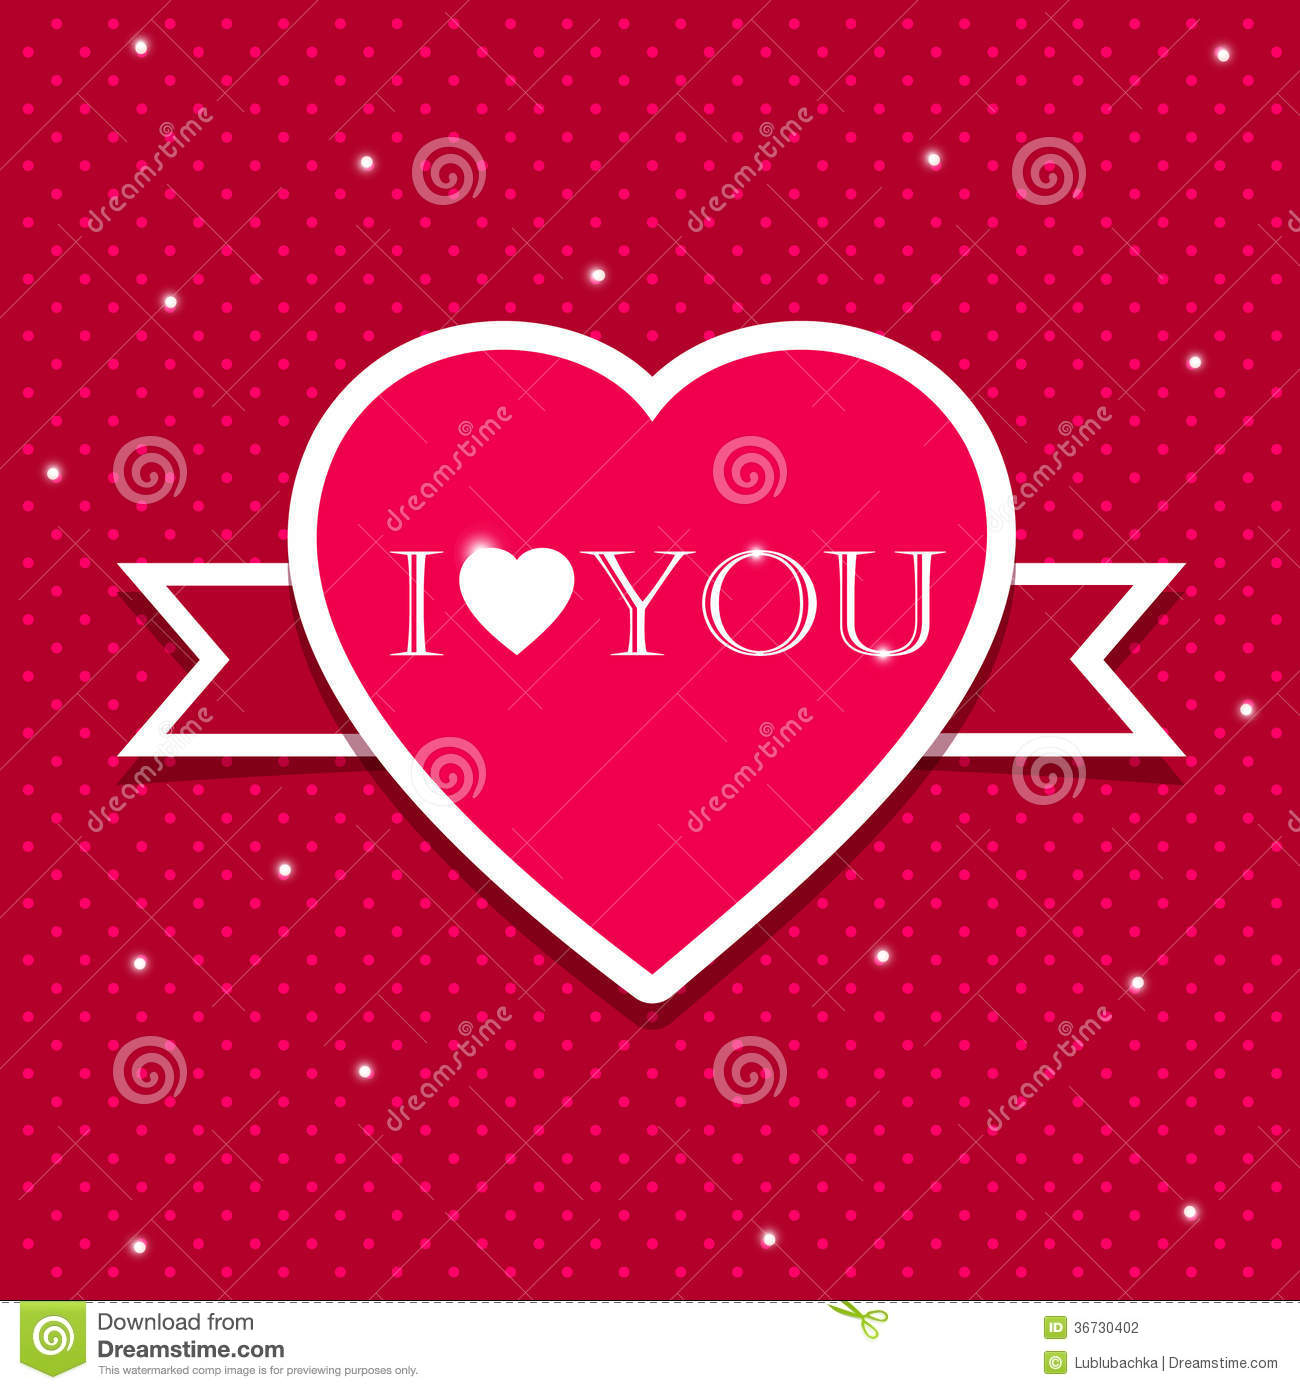 Valentine day love heart card template stock illustration valentine day love heart card template maxwellsz